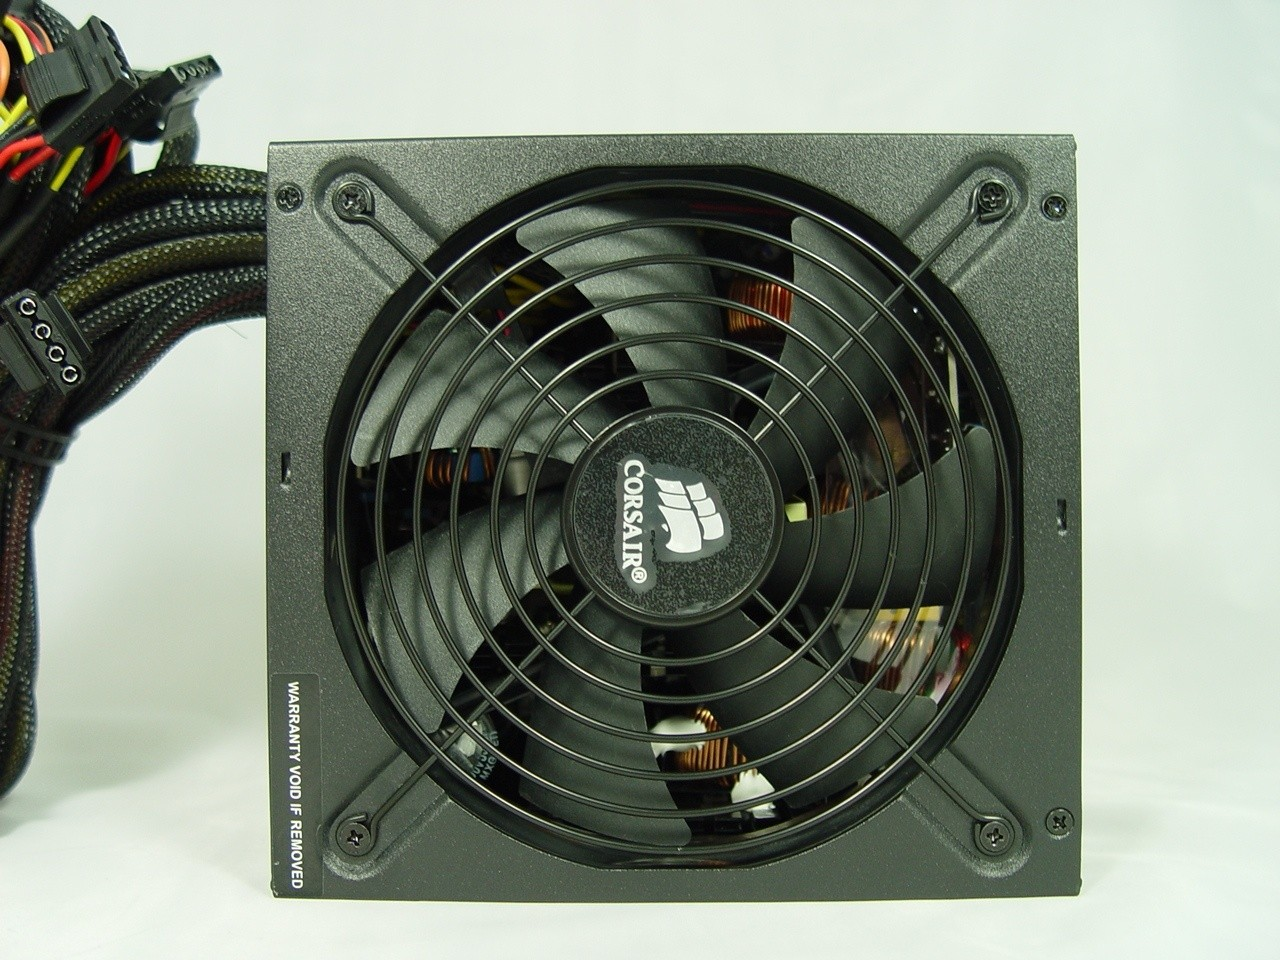 corsair_tx850v2_850_watt_power_supply_review